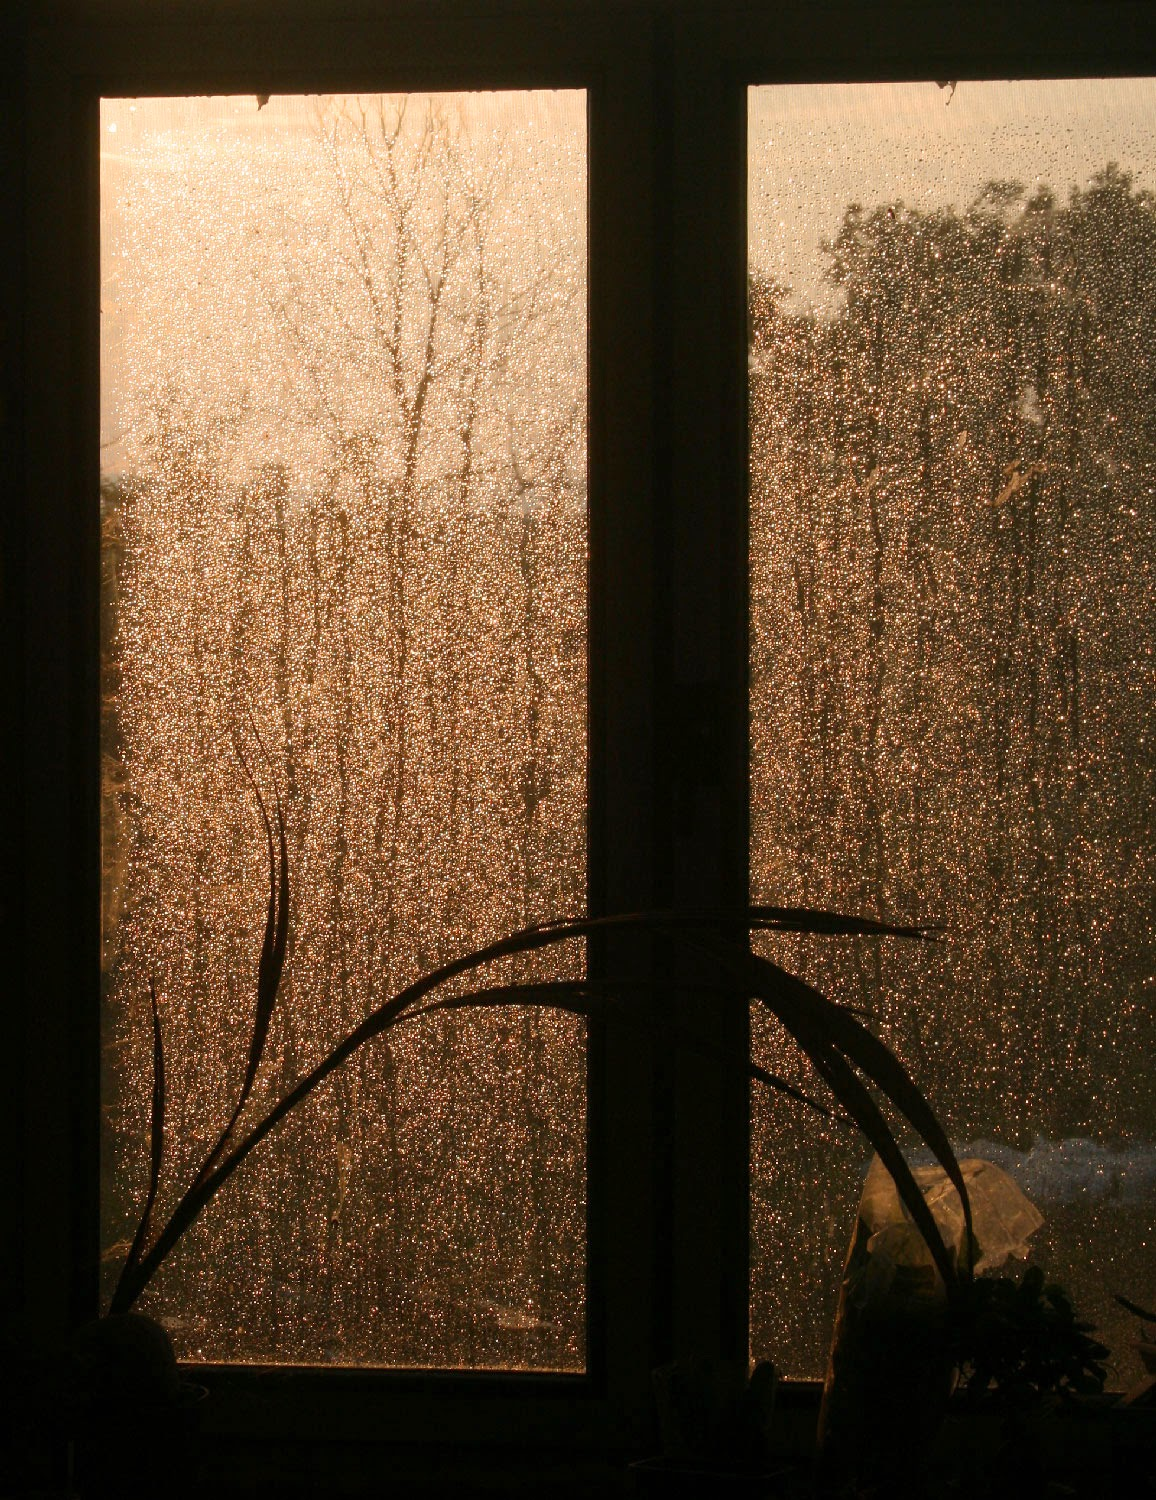 Sun through a rainy window